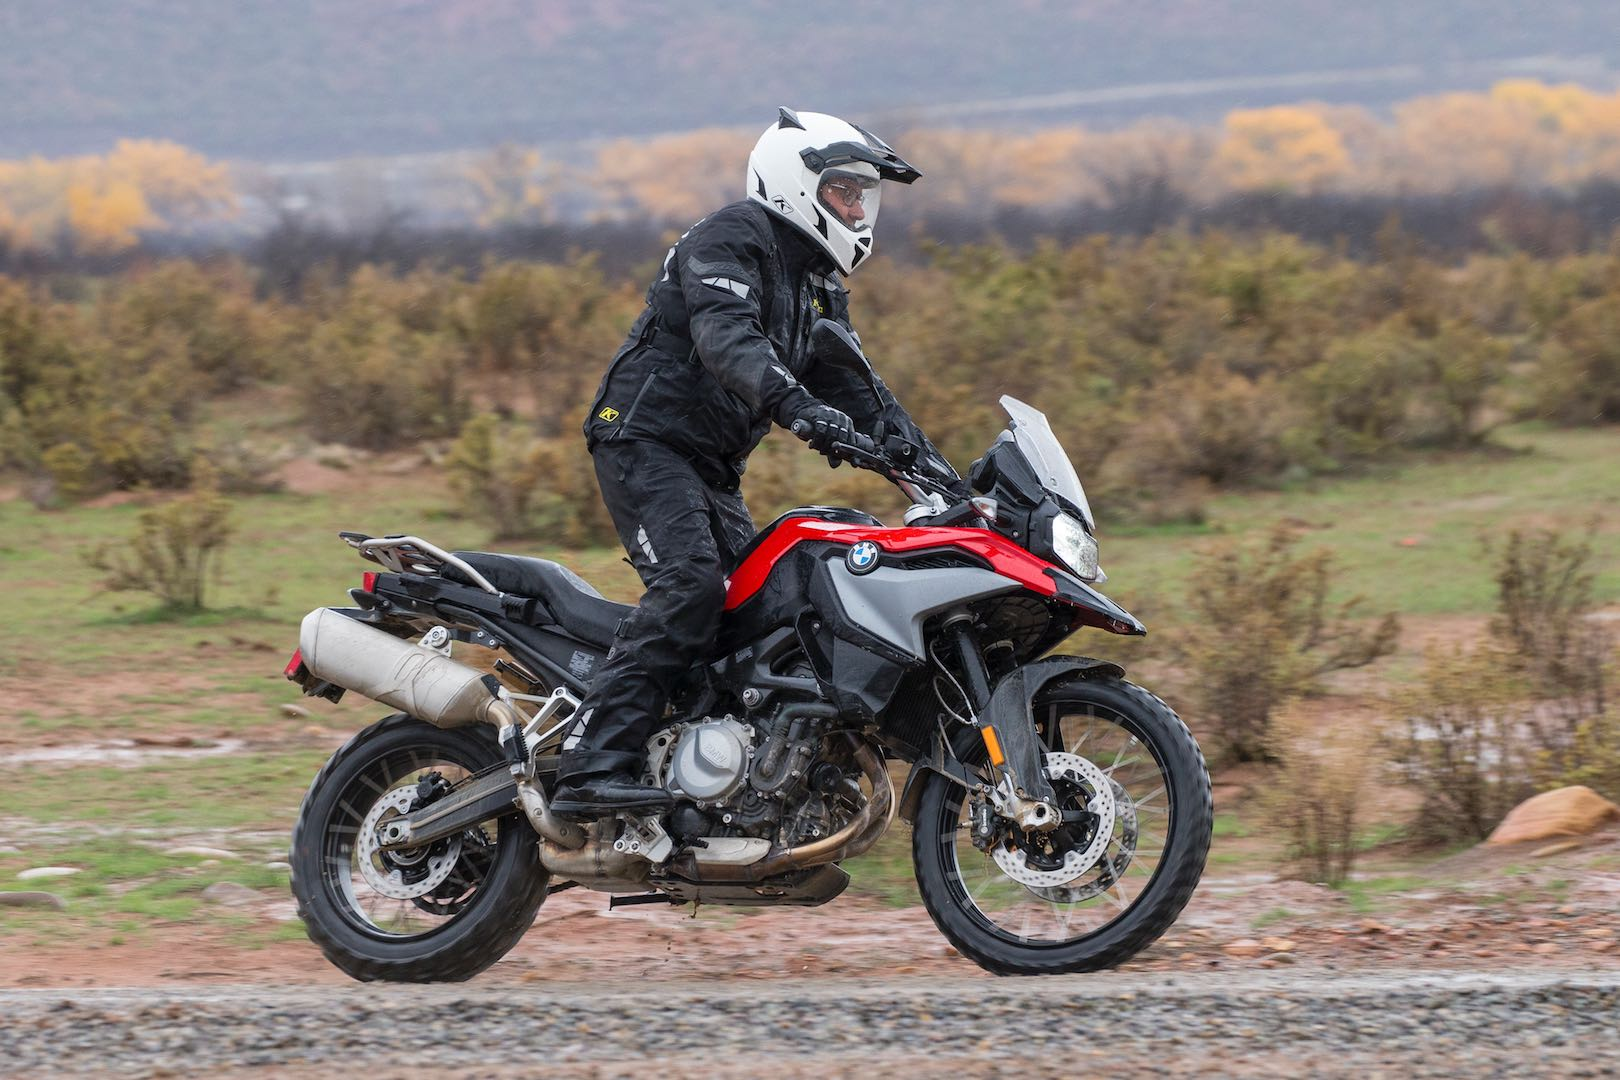 2019 BMW F 850 GS Review